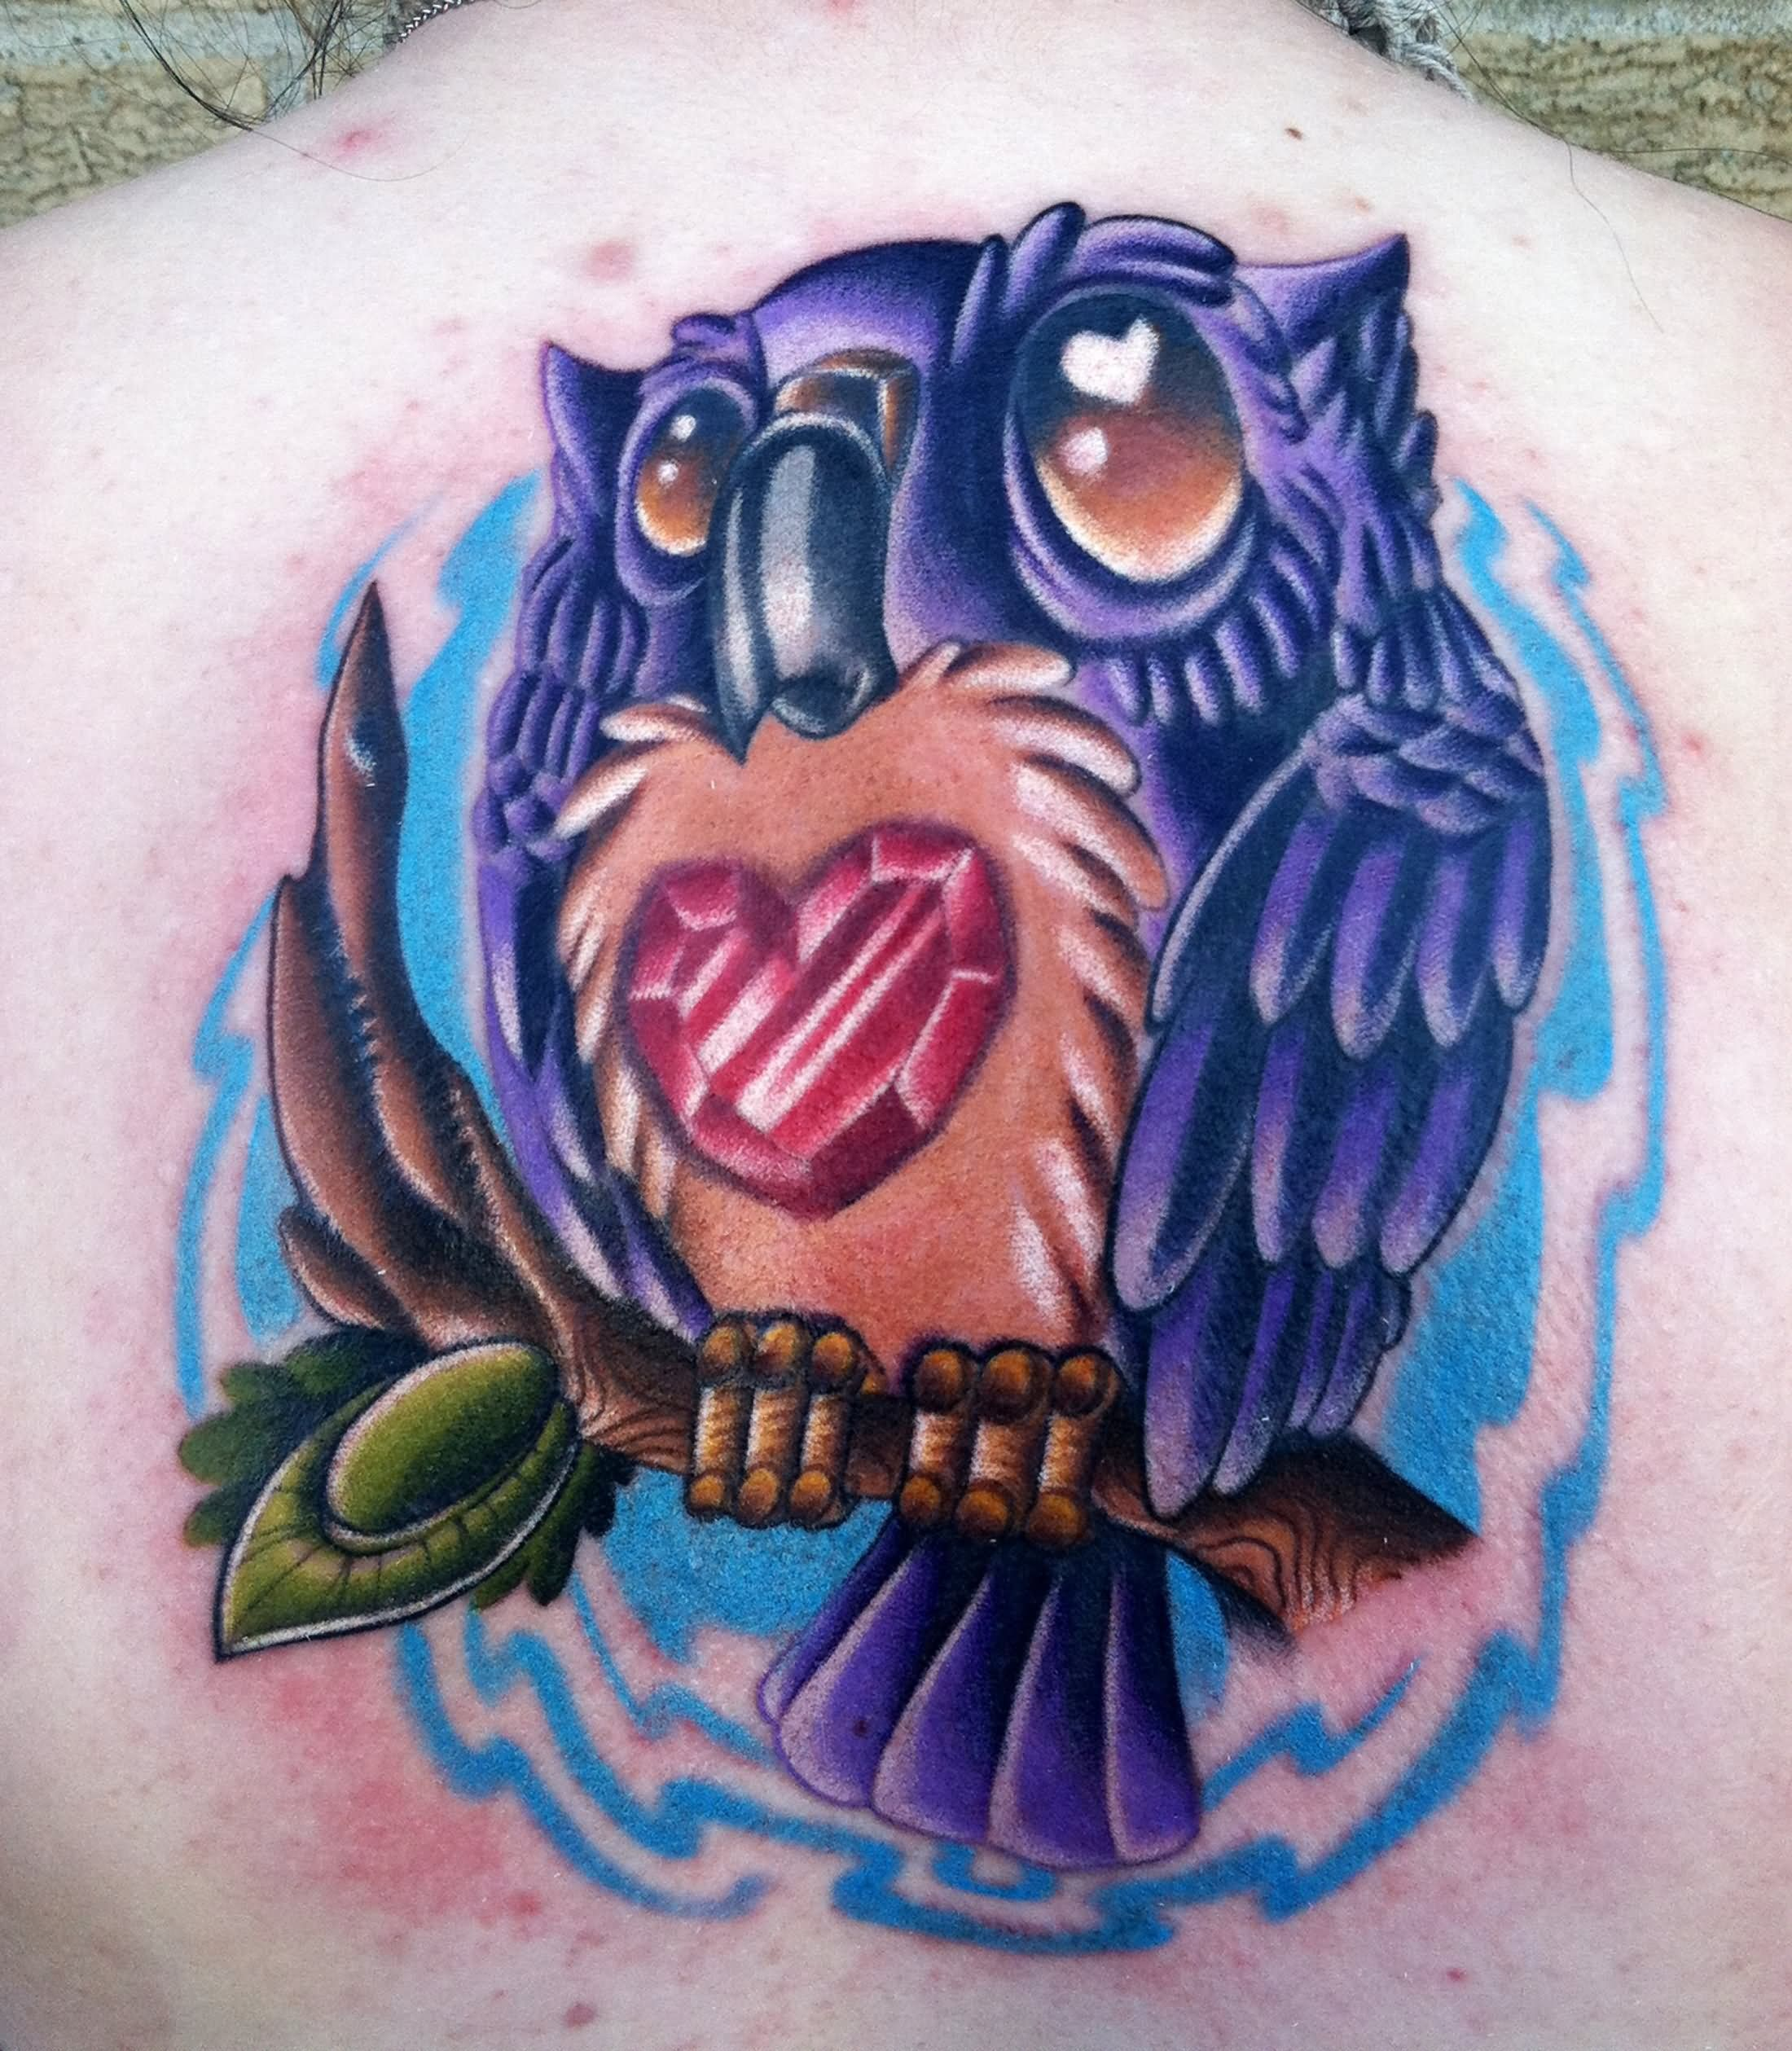 Tattoo Designs New: Image Result For New School Tattoo